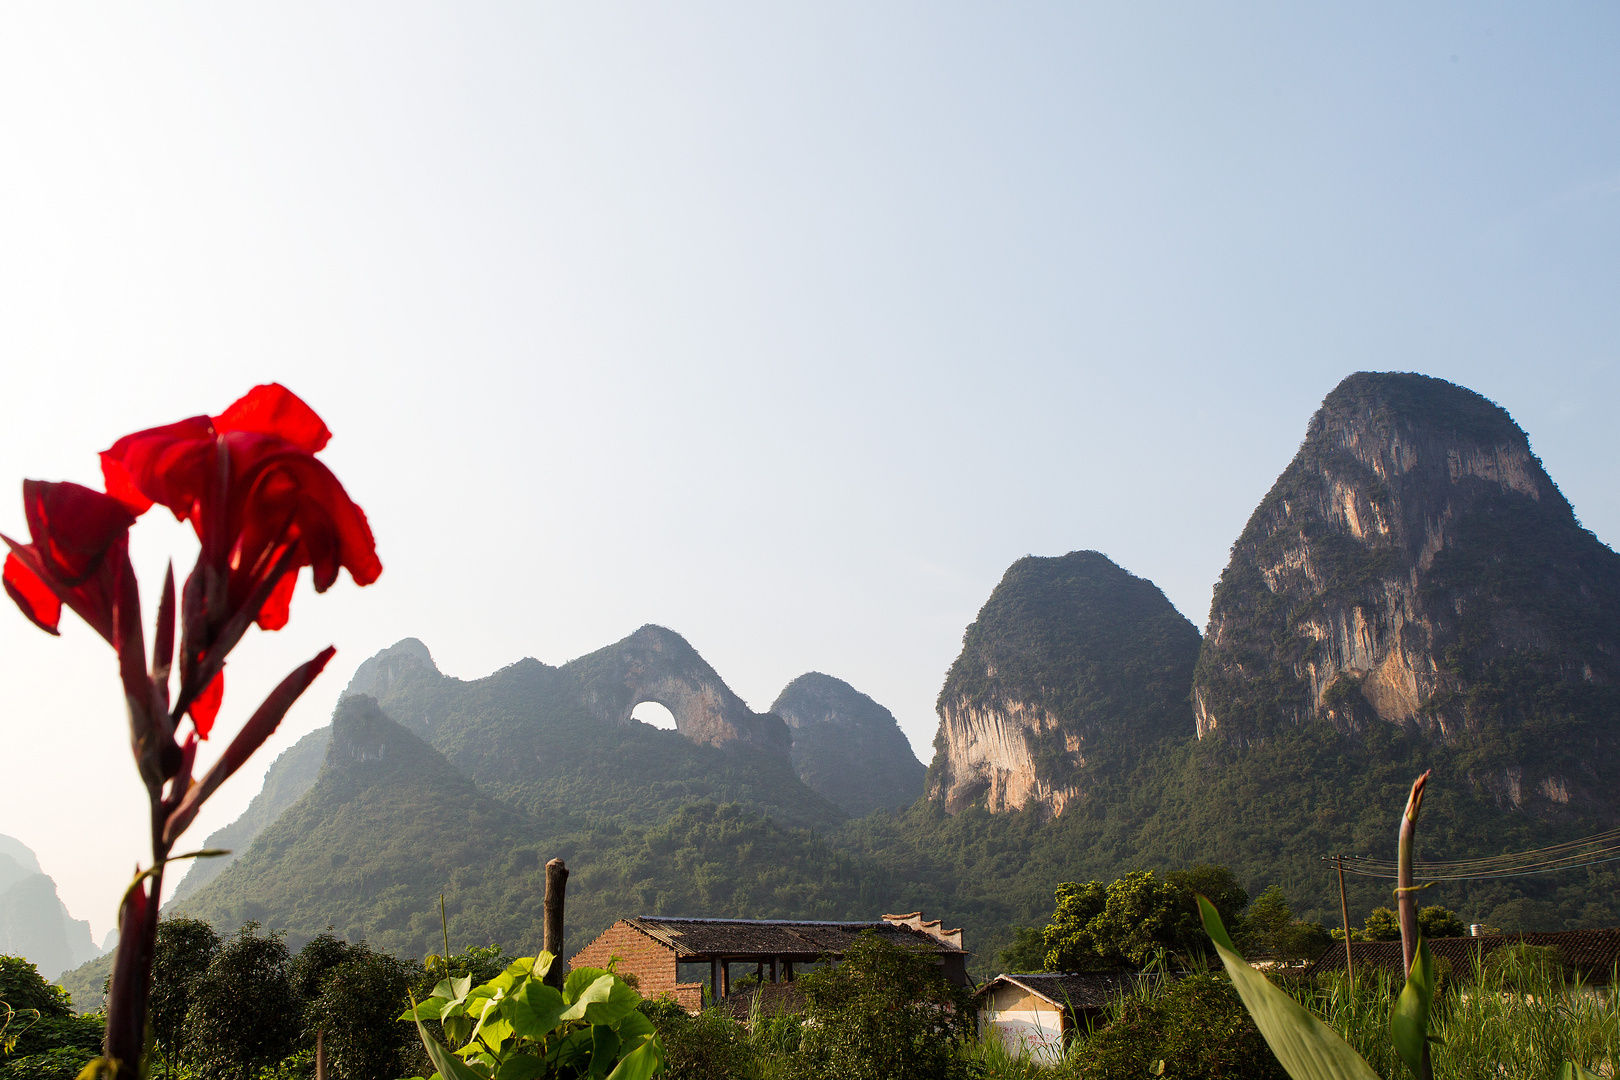 moon hill / Yangshuo region